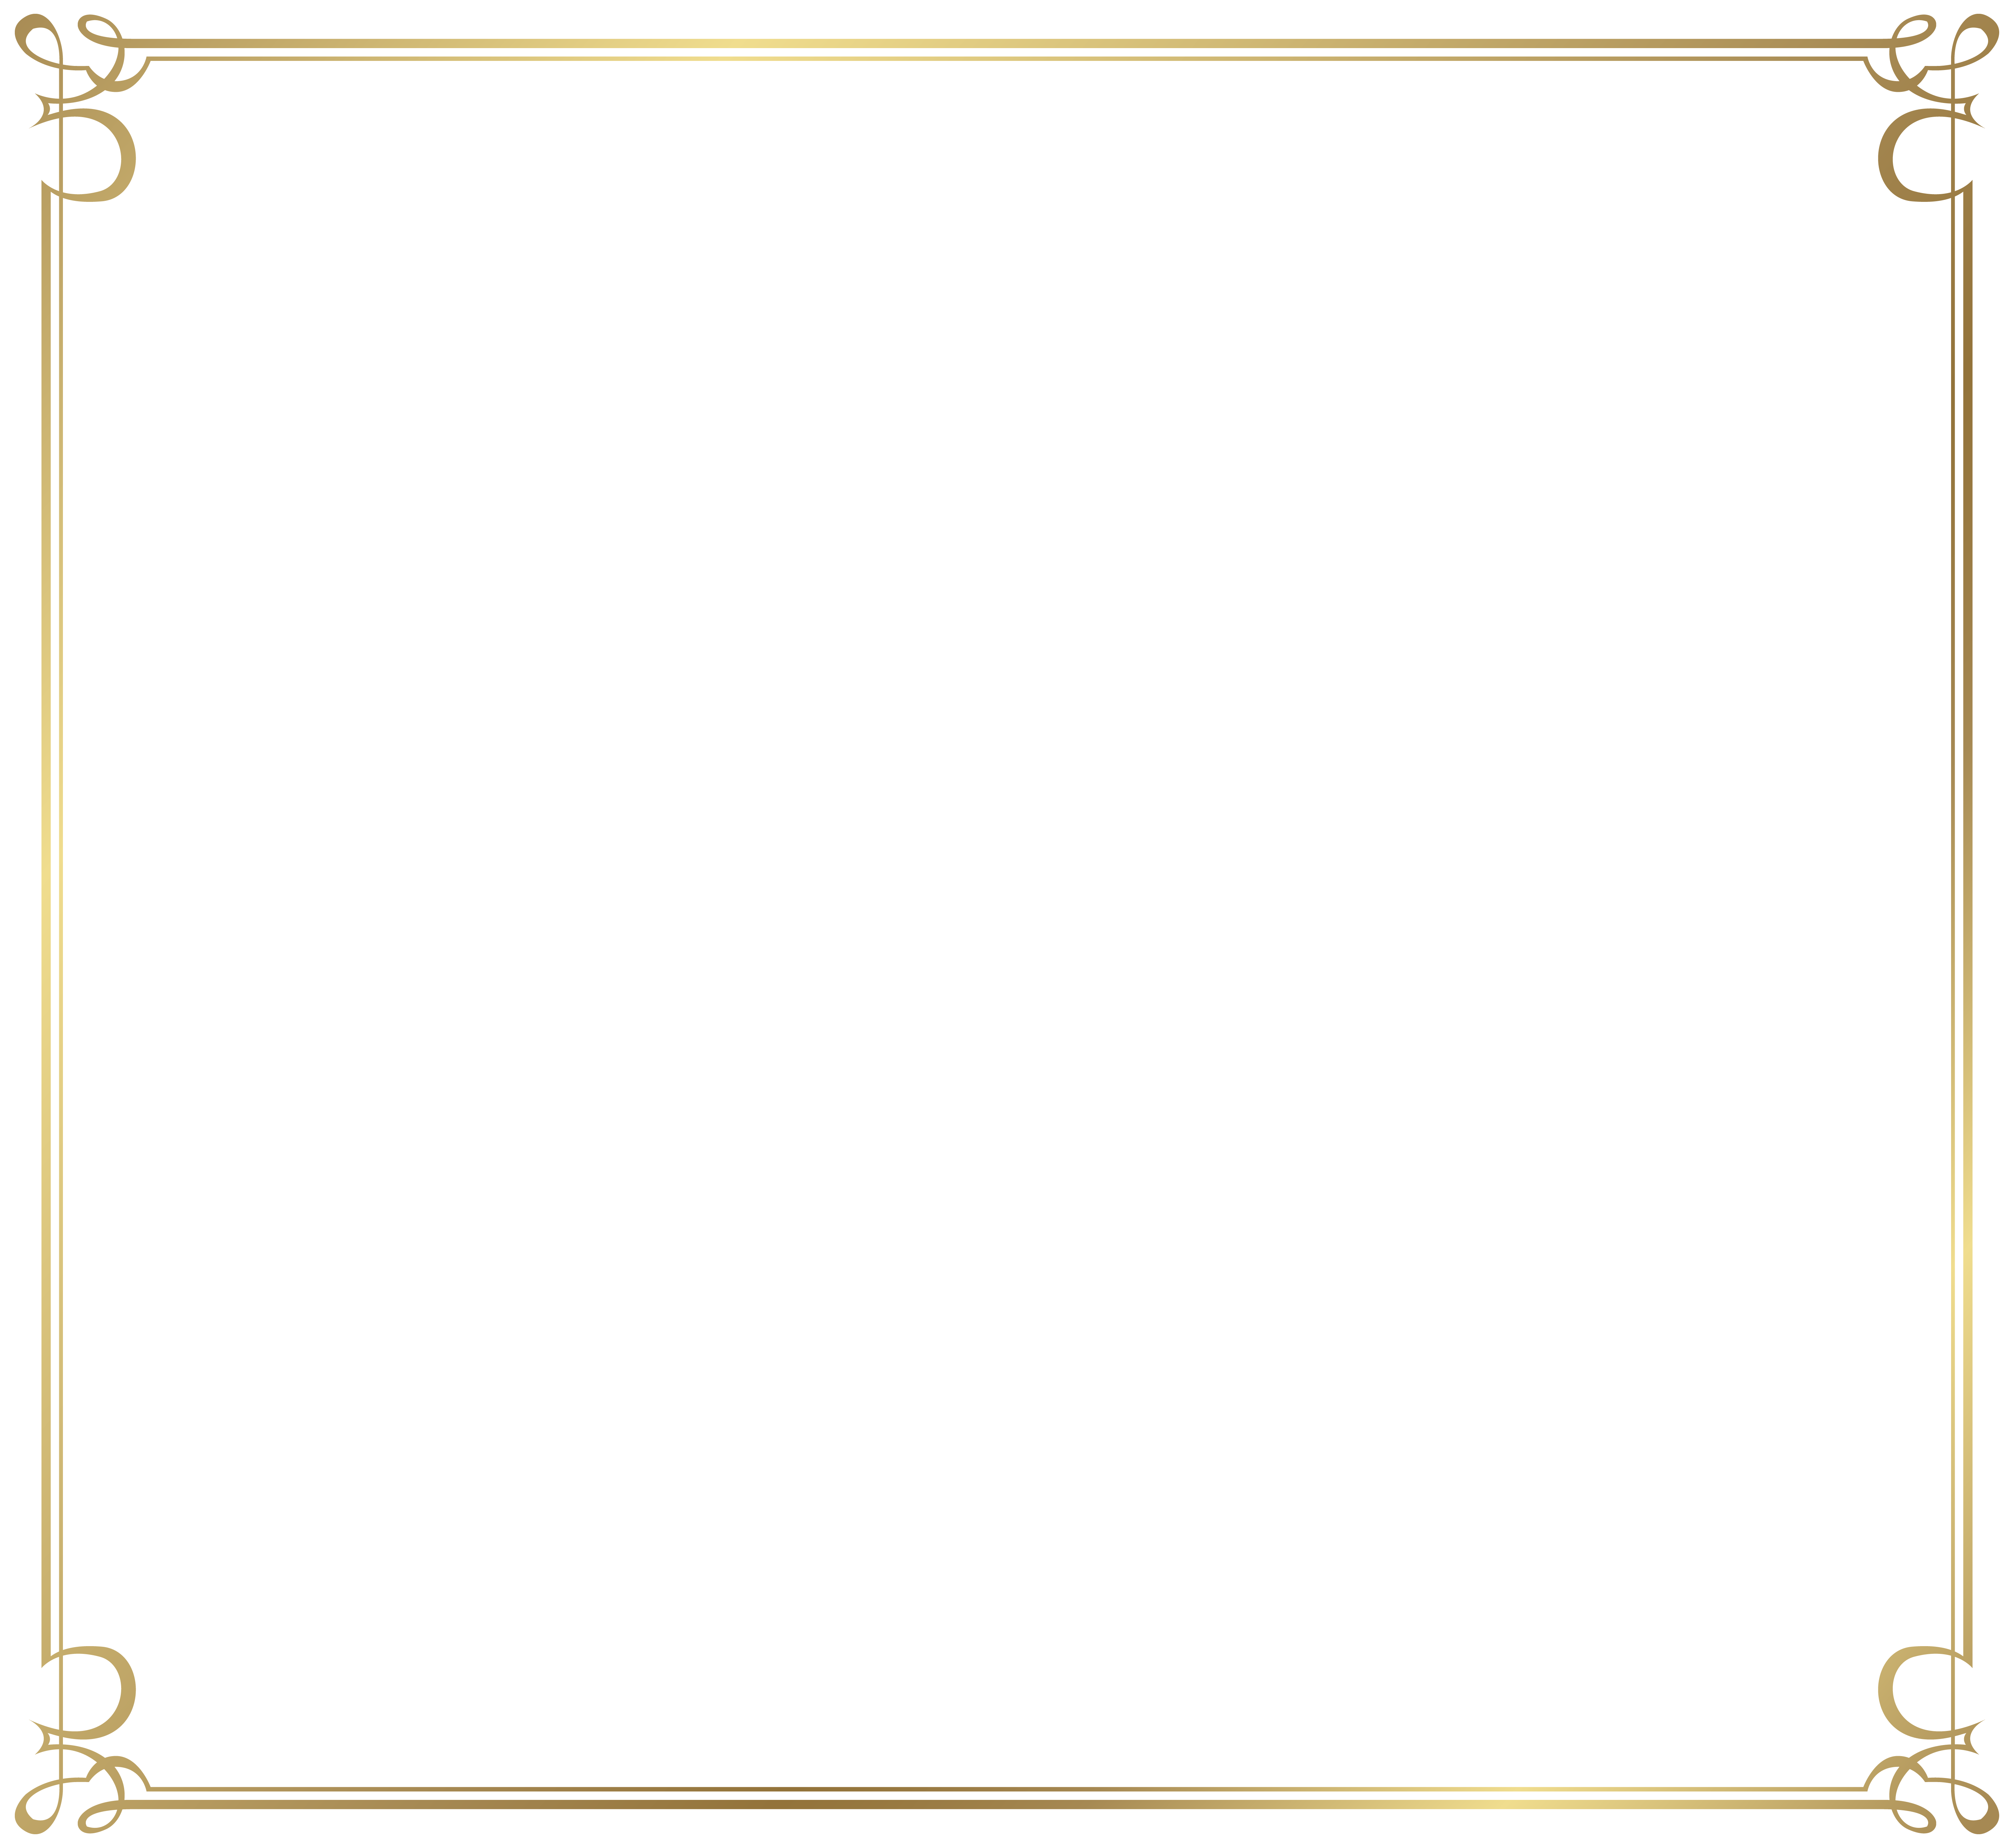 Mat Decorative Border Photos PNG Images